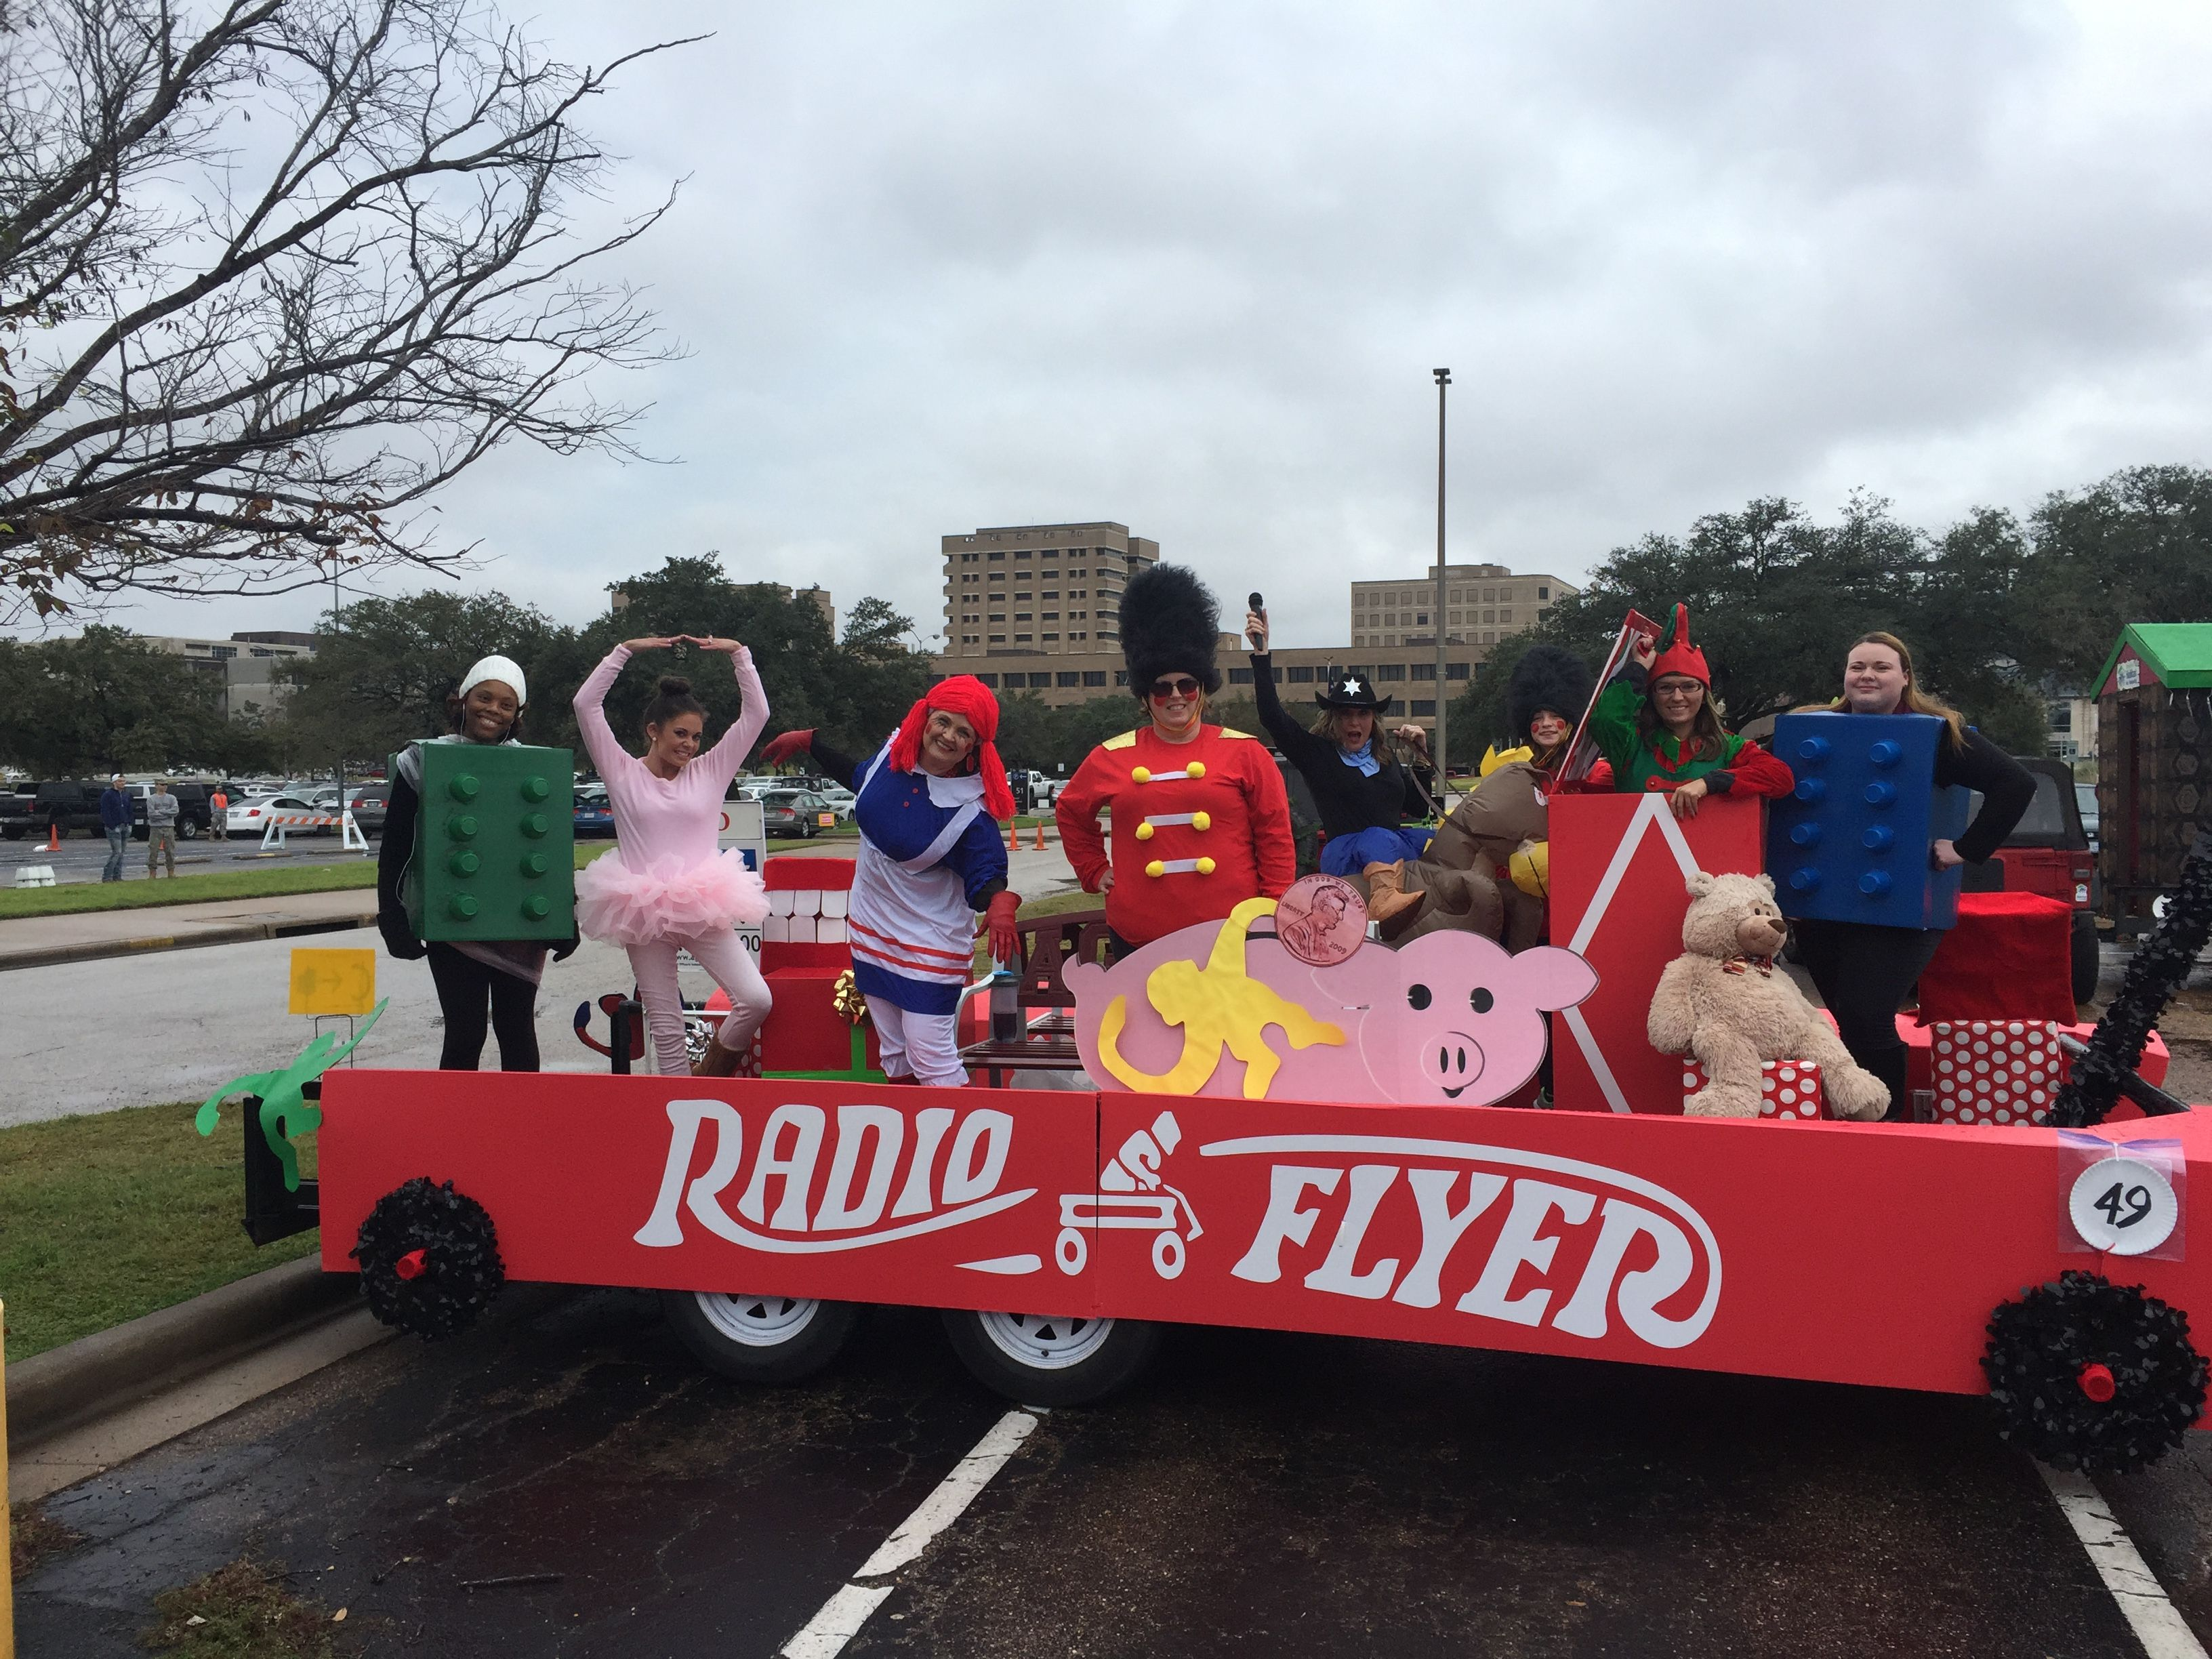 Christmas Homecoming Float.Radio Flyer Parade Float Christmas Parade Homecoming